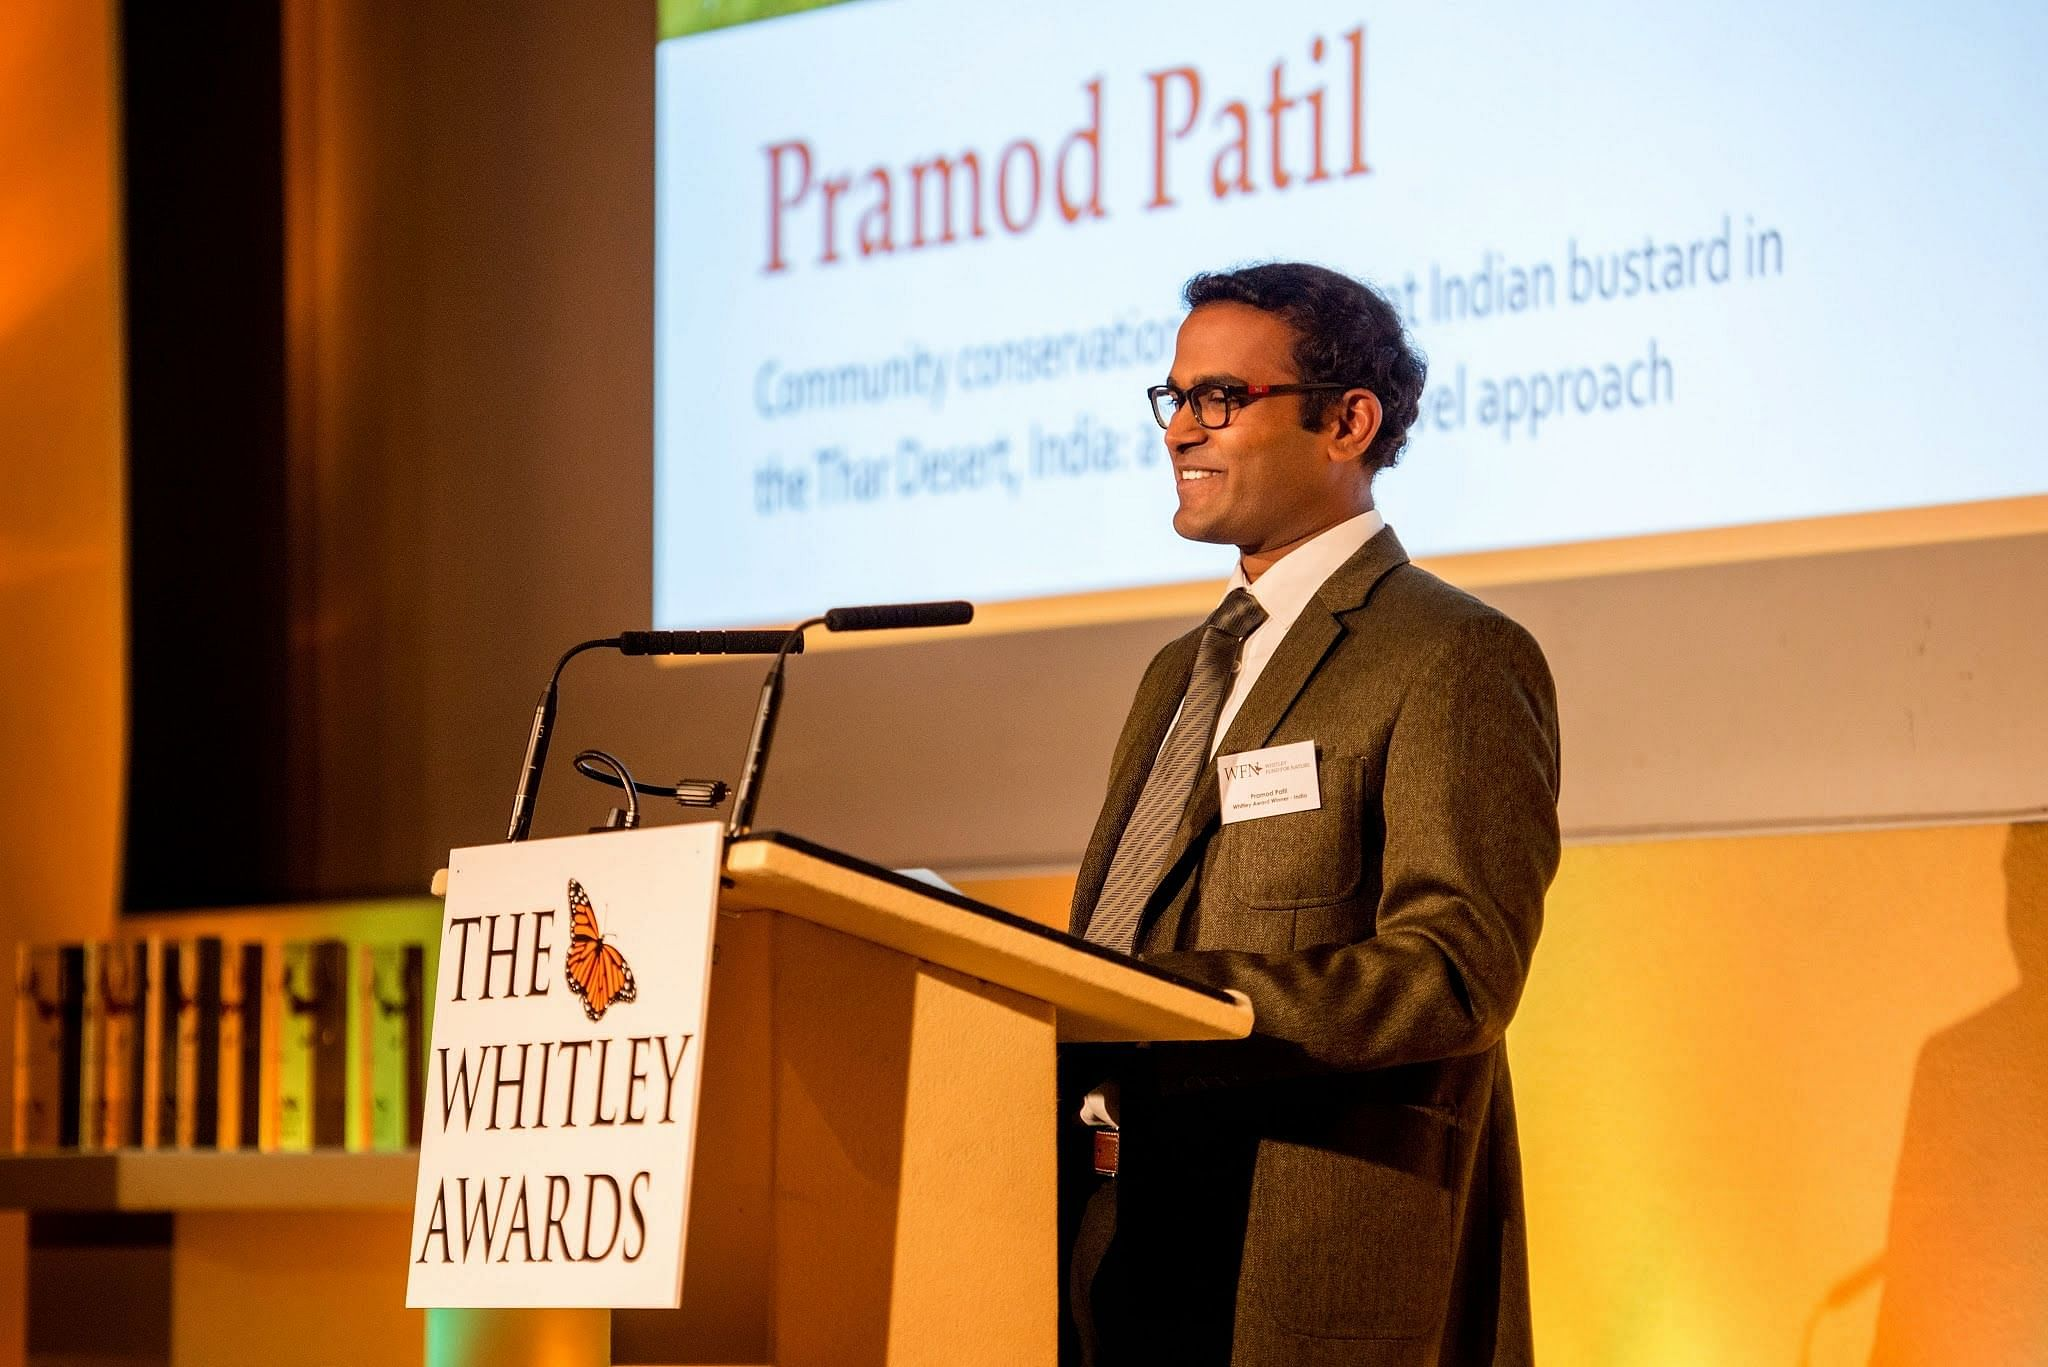 Dr. Patil speaking at the Whitley Award function